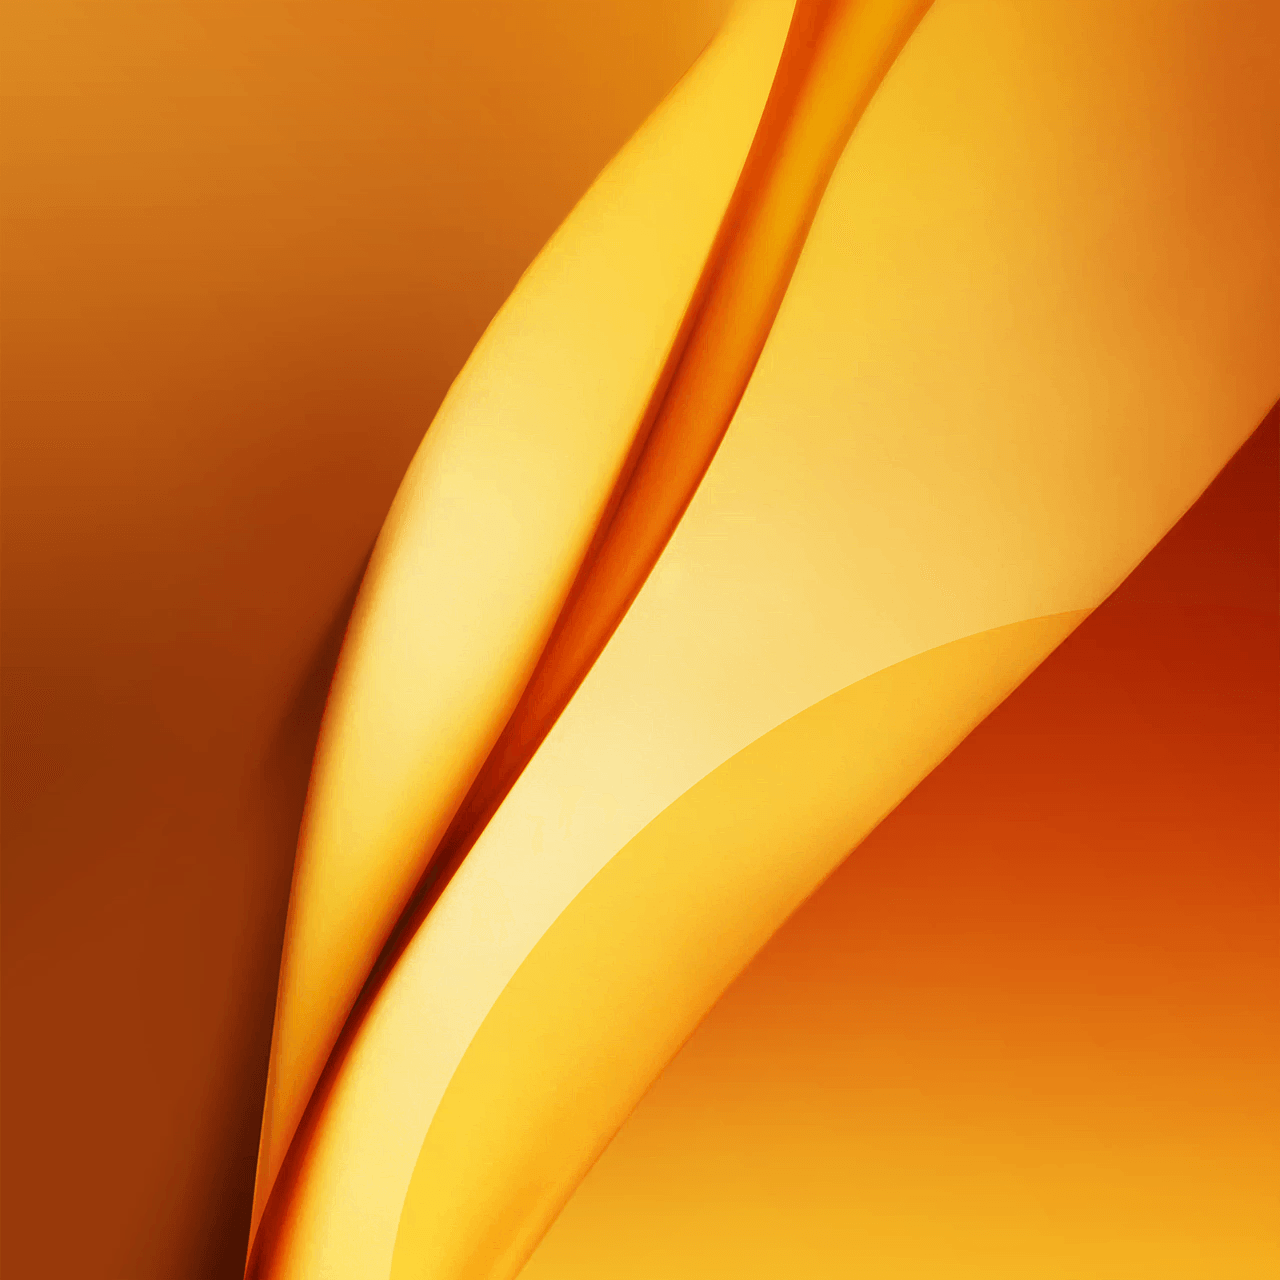 Samsung Galaxy On5 And On7 Stock Wallpapers Download